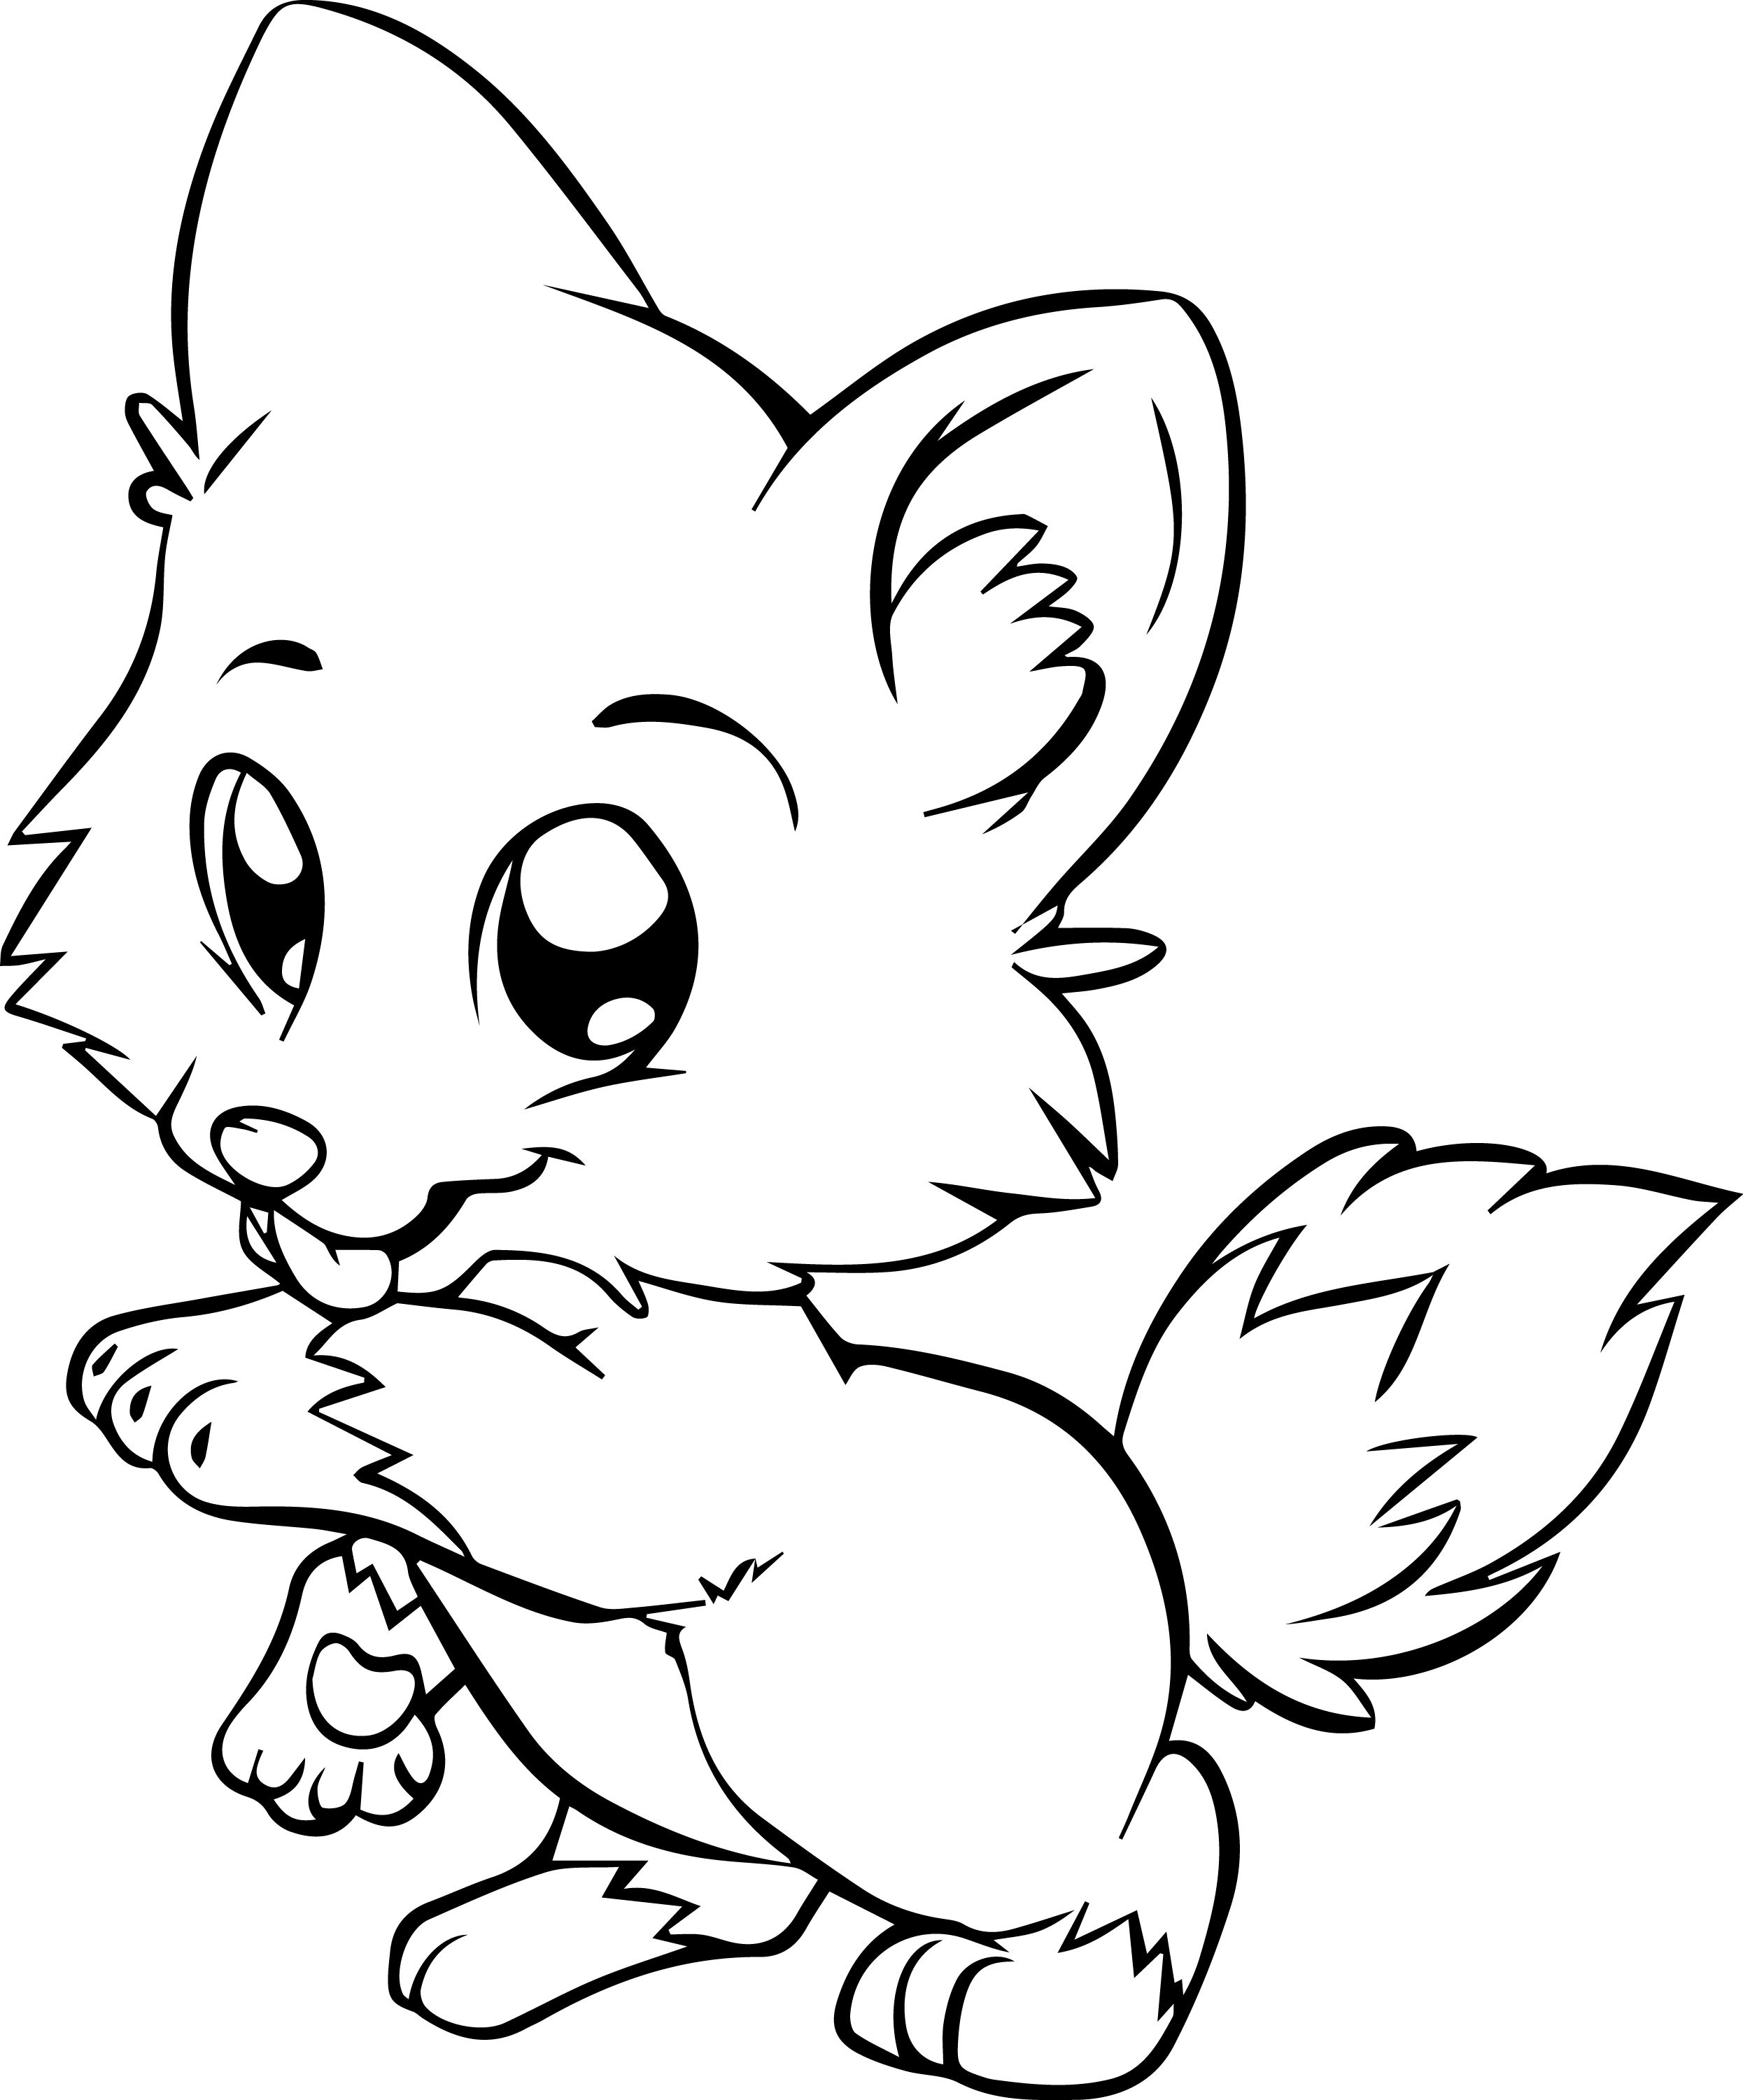 Printable Puppy Coloring Pages Ideas  Puppy coloring pages